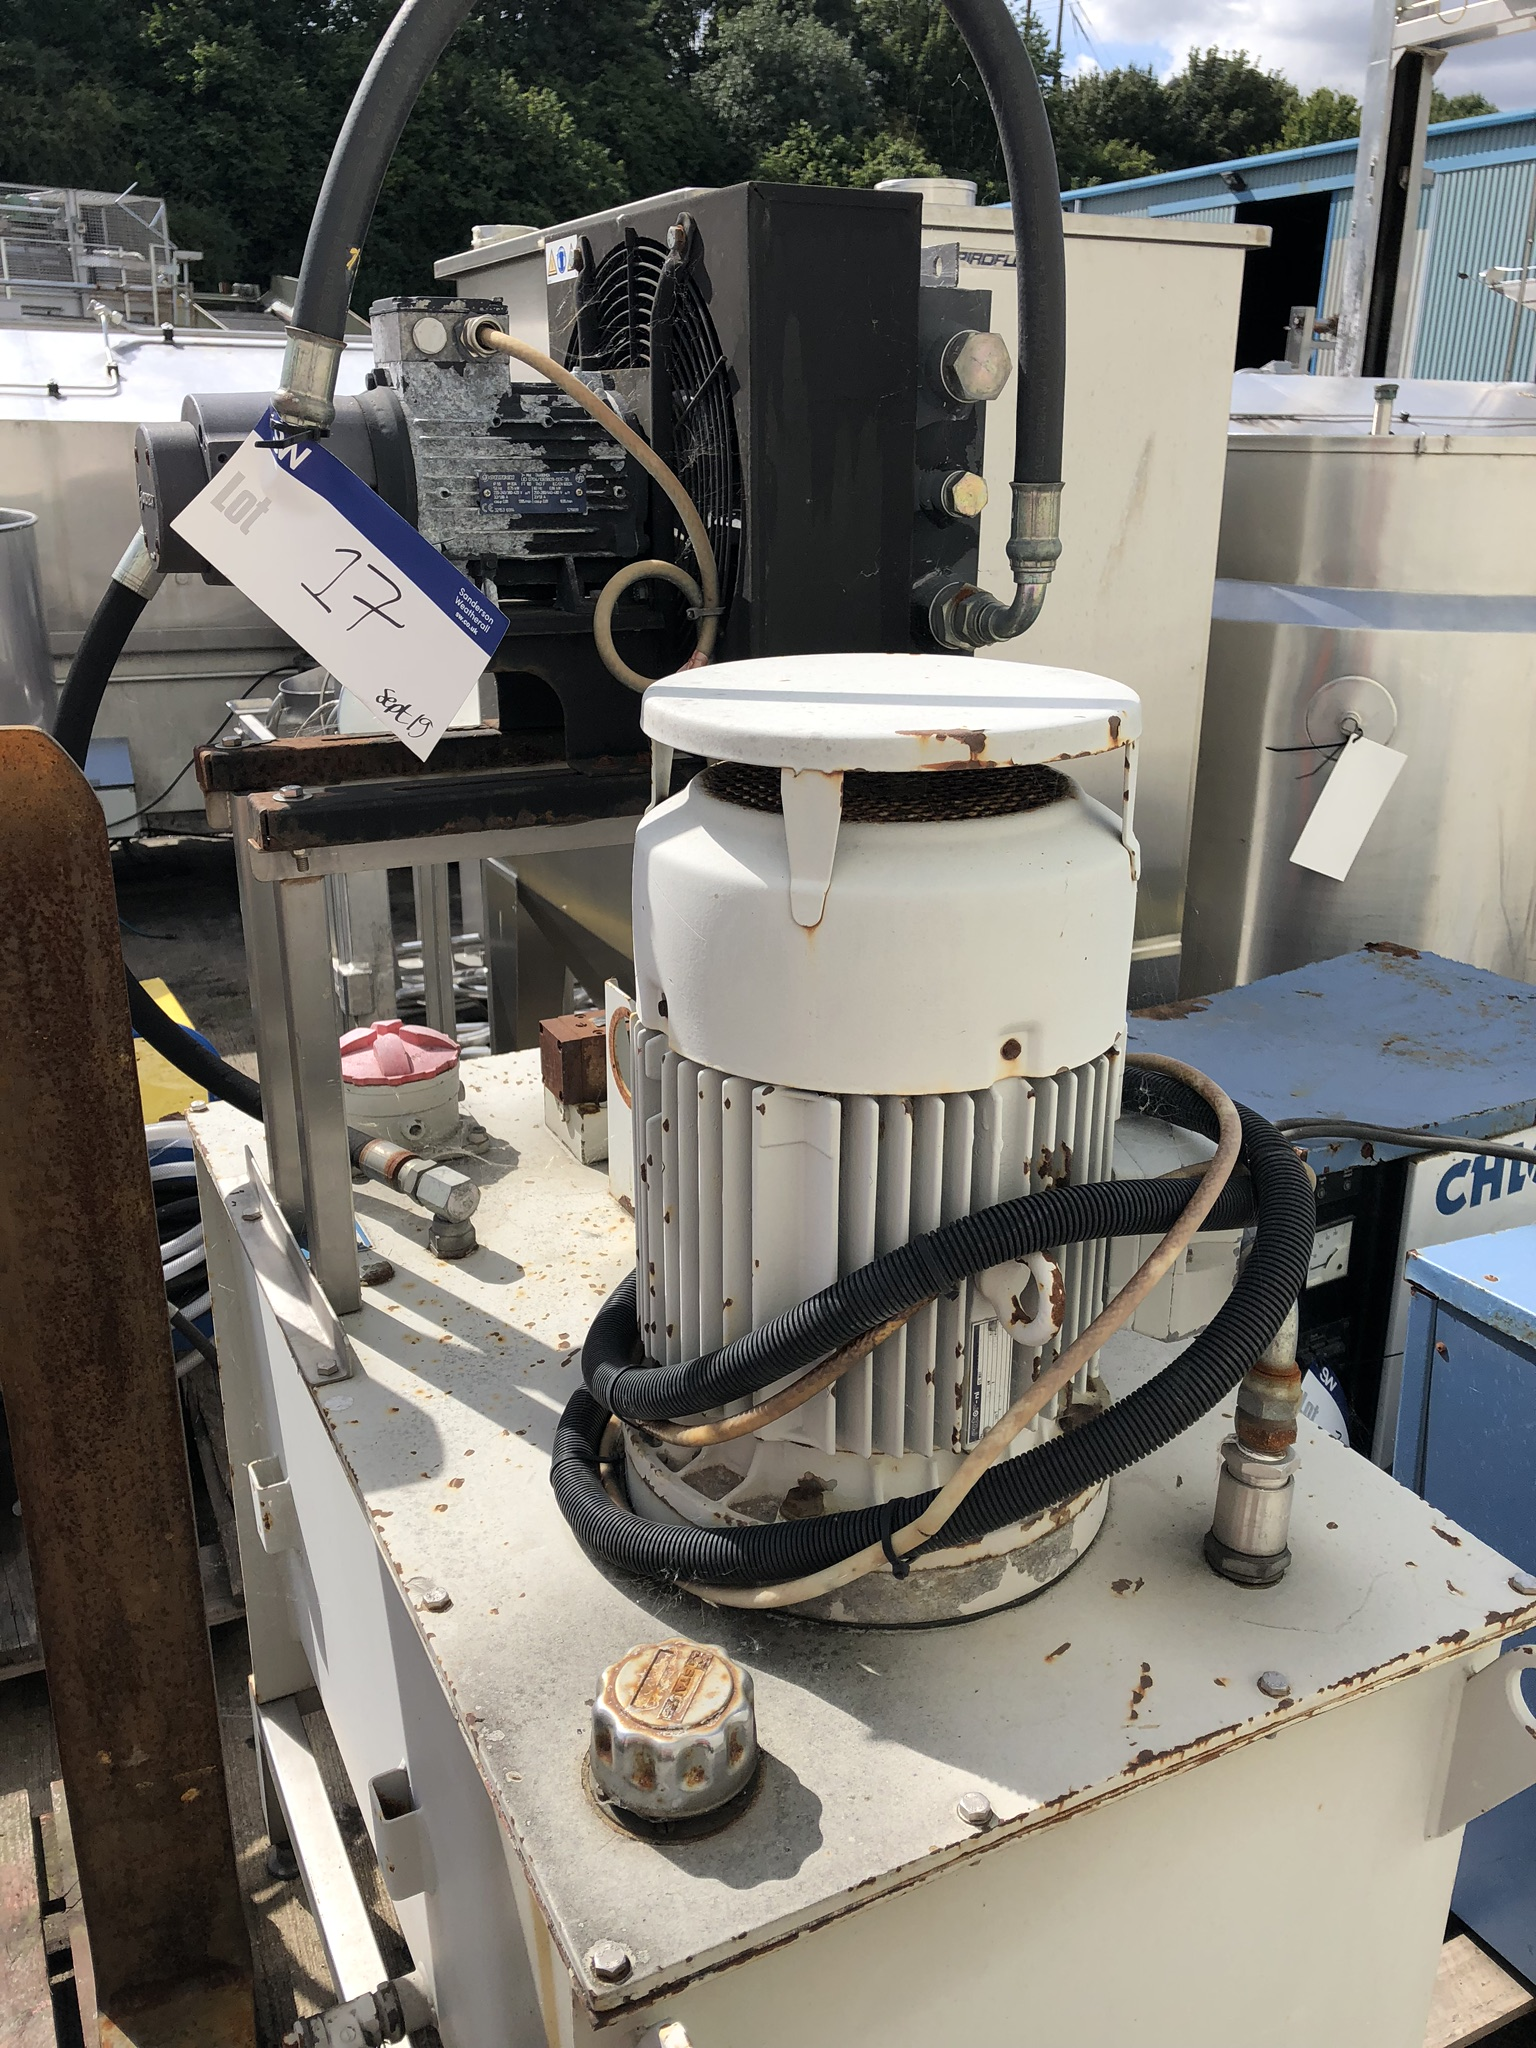 Oiltech QUOTC2/025 Hydraulic Pump, serial no. A1-5-00035-00B, approx. 1m x 0.6m x 1.8m, lift out - Image 2 of 3